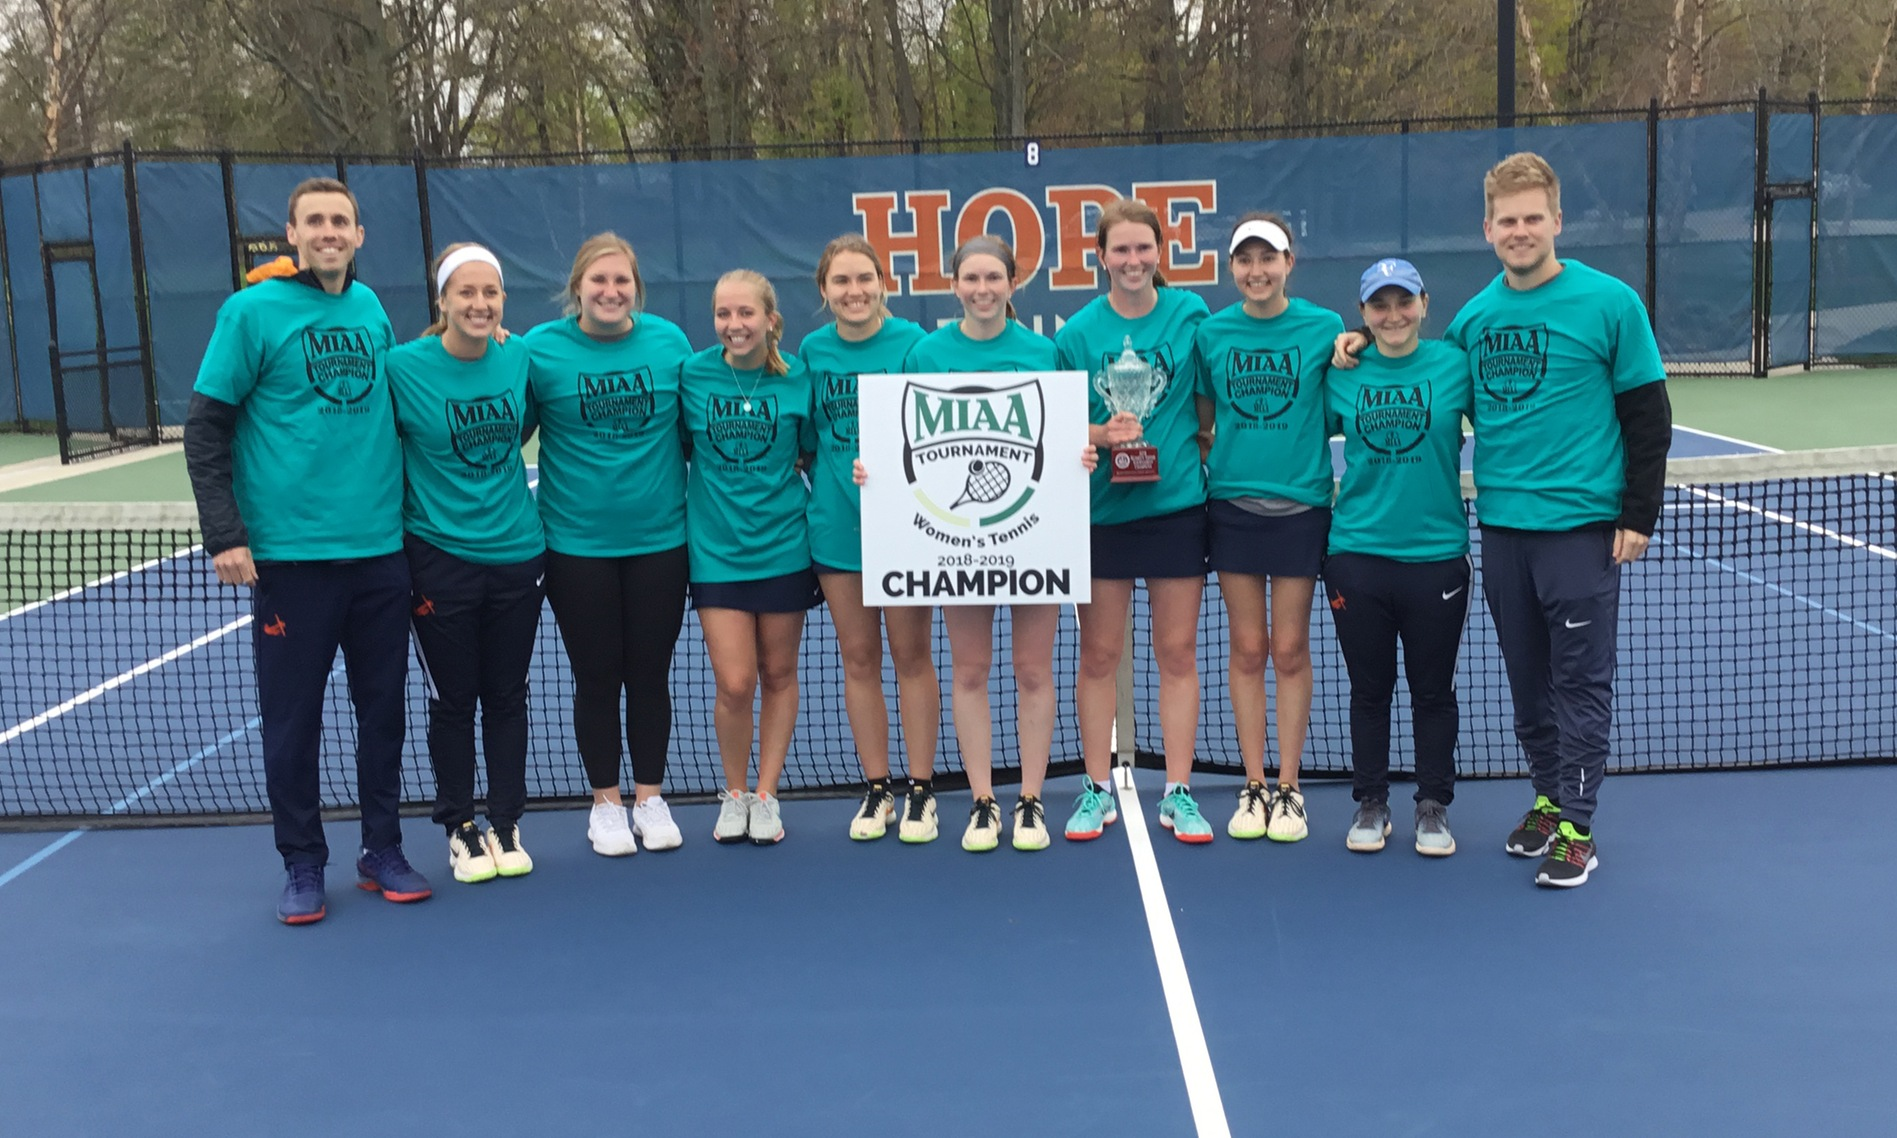 Hope women's tennis team poses with MIAA Tournament championship trophy